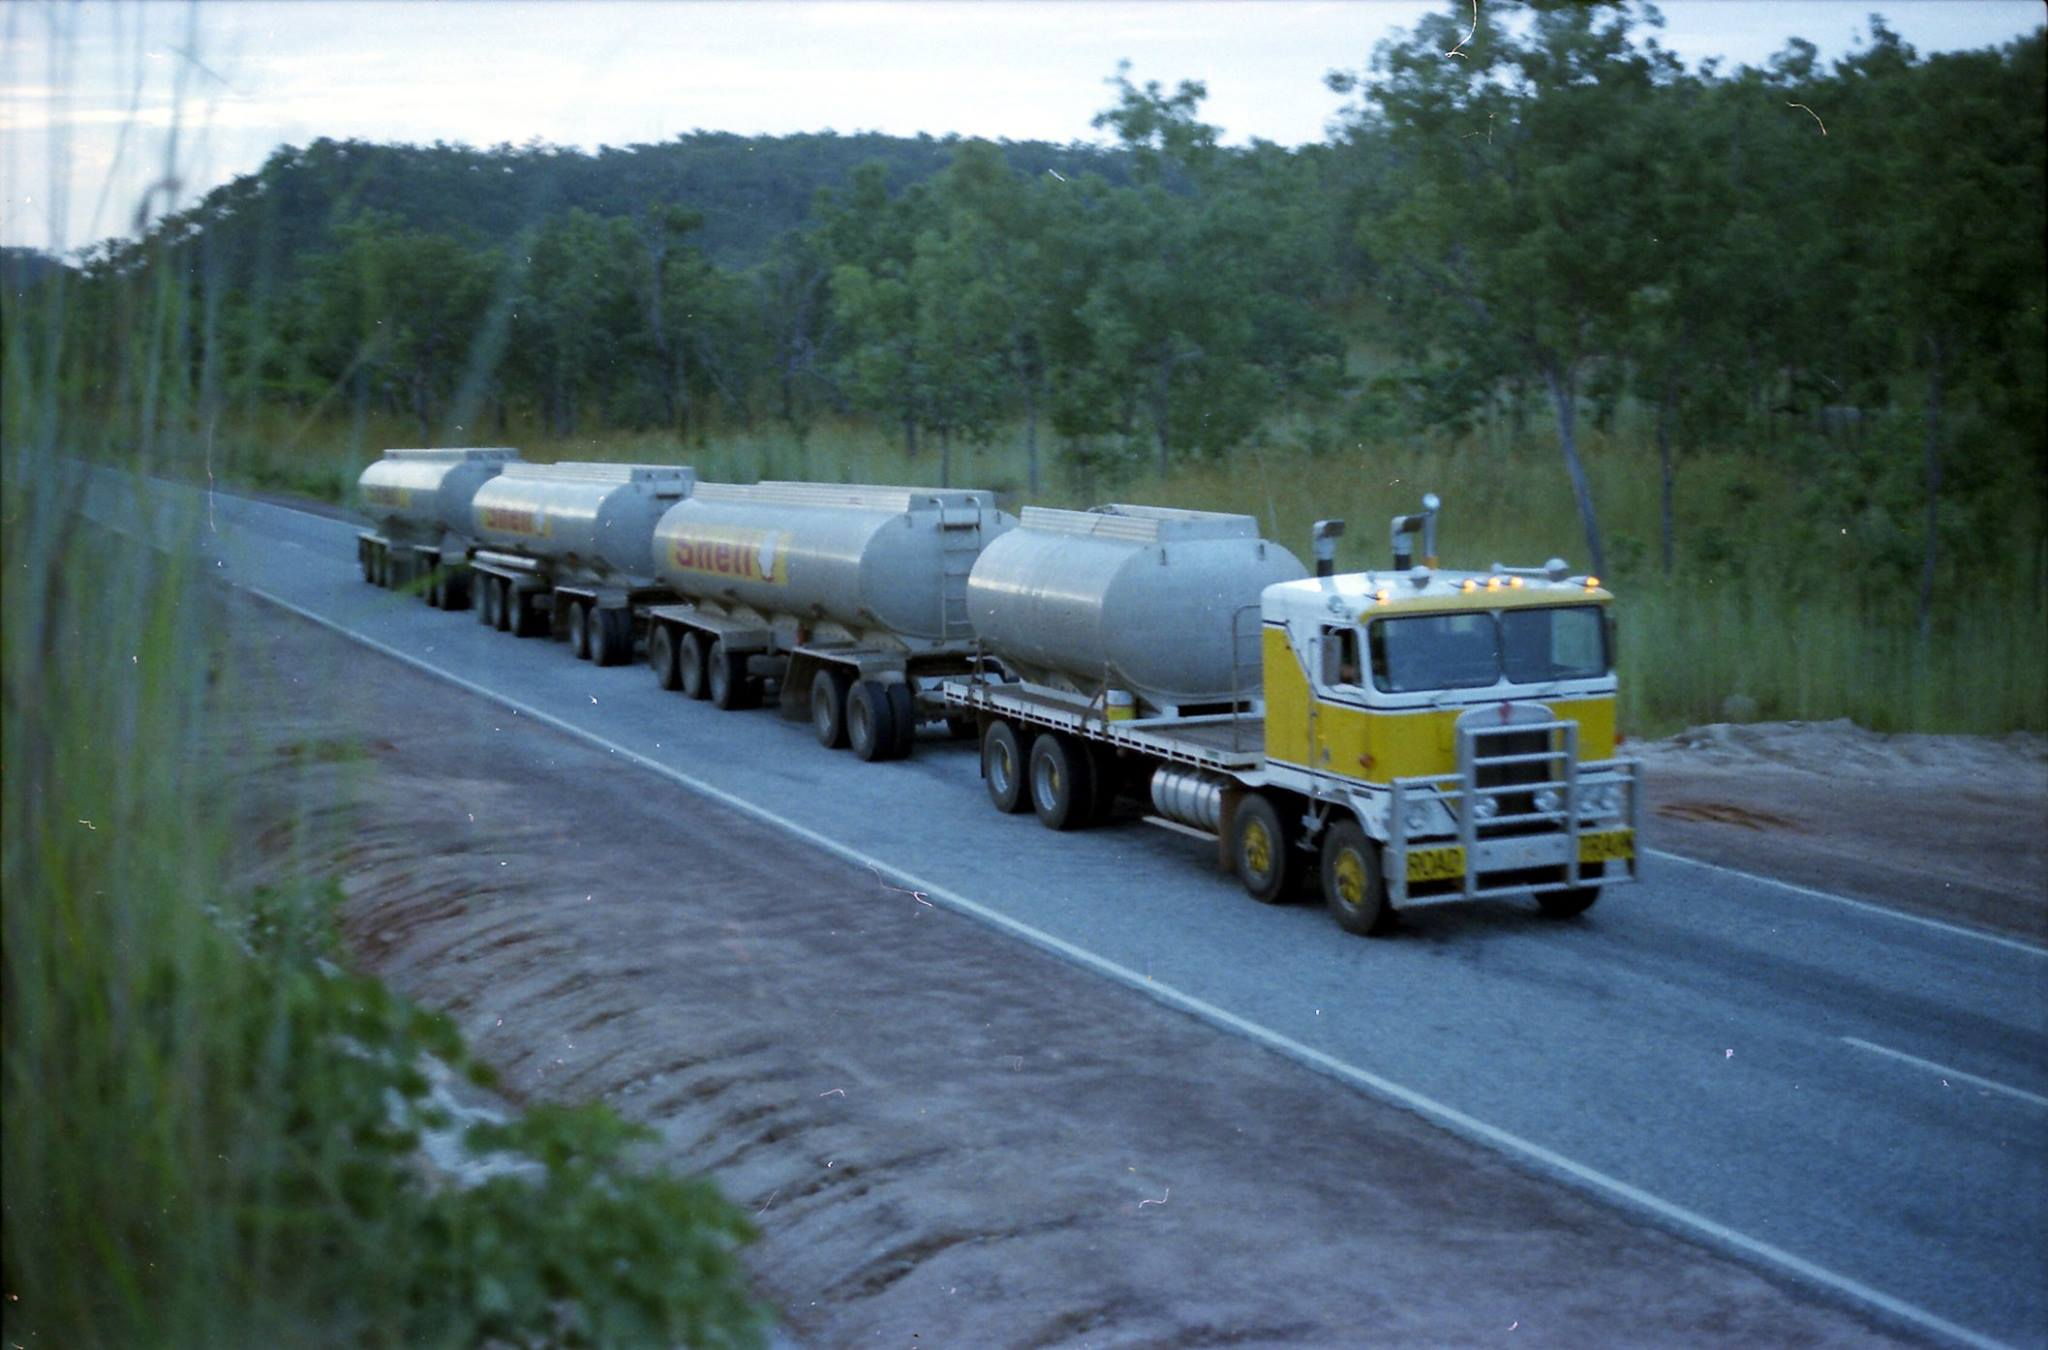 Kookie-Wendt-is-the-driver-Location-is-the-Depot-Creek-Jumpup--approx-122-miles-south-of-Darwin-1982